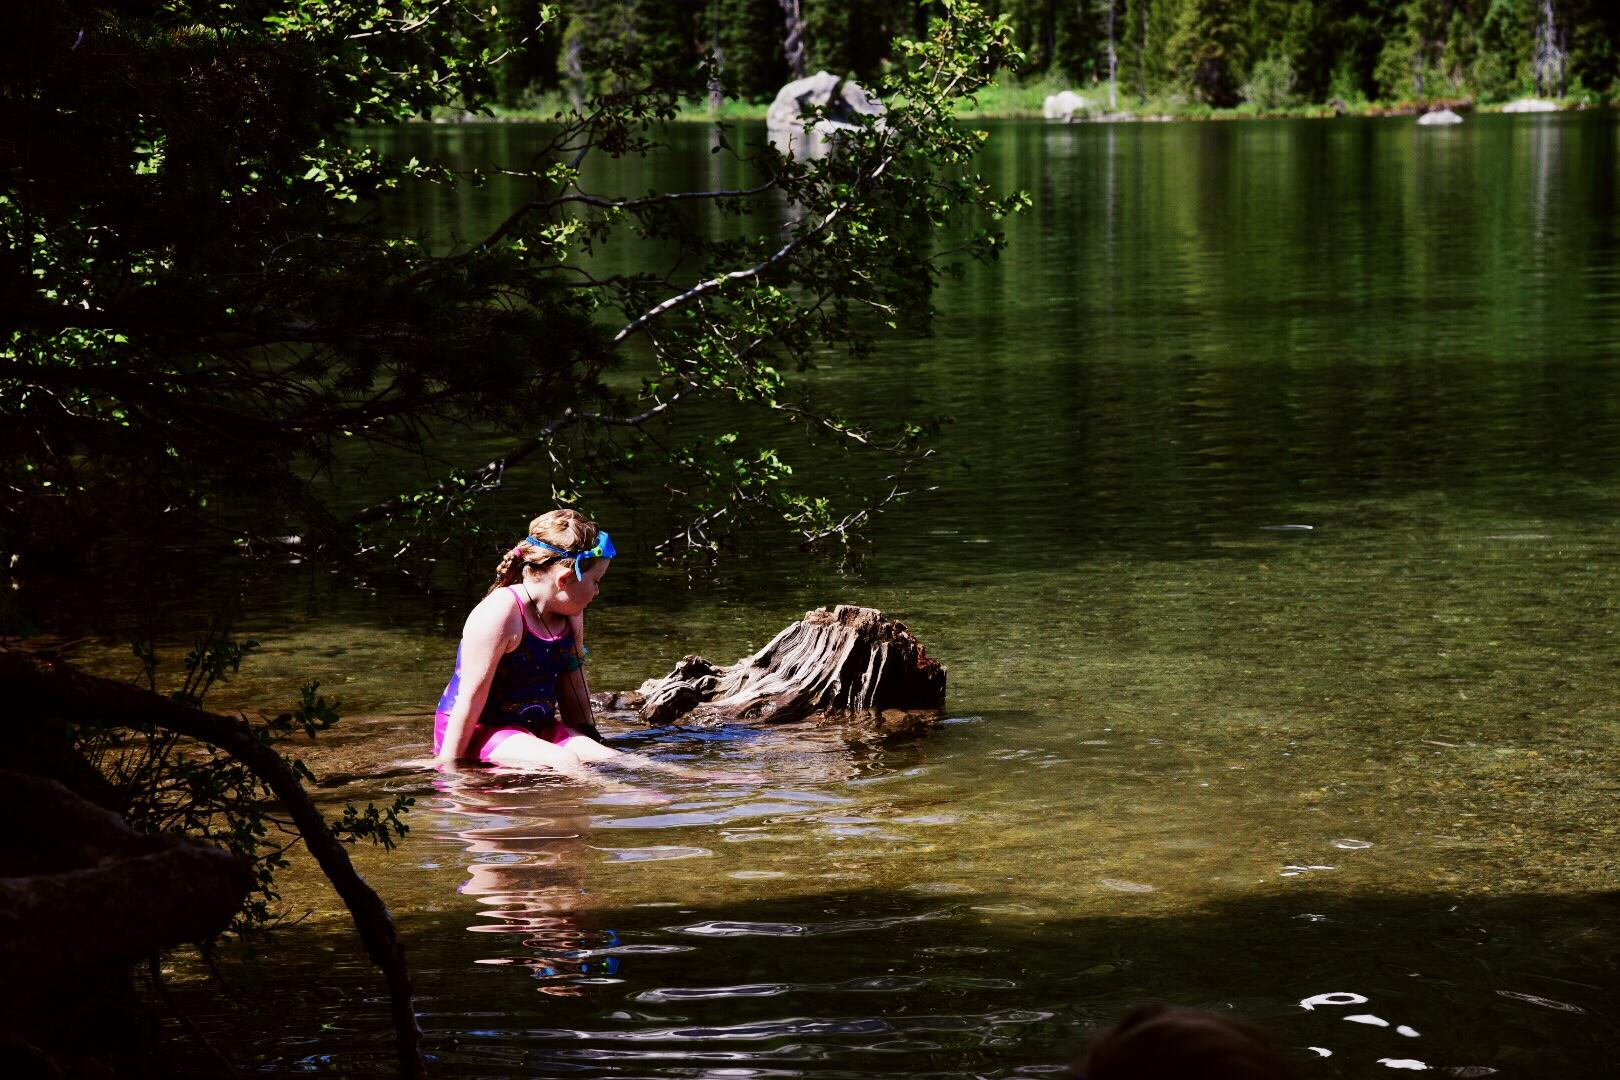 String Lake is a nice shallow lake of only 6 feet deep and is the ideal location for swimming, canoeing, SUP and kayaking. (Image: Rebecca Mongrain/Seattle Refined)